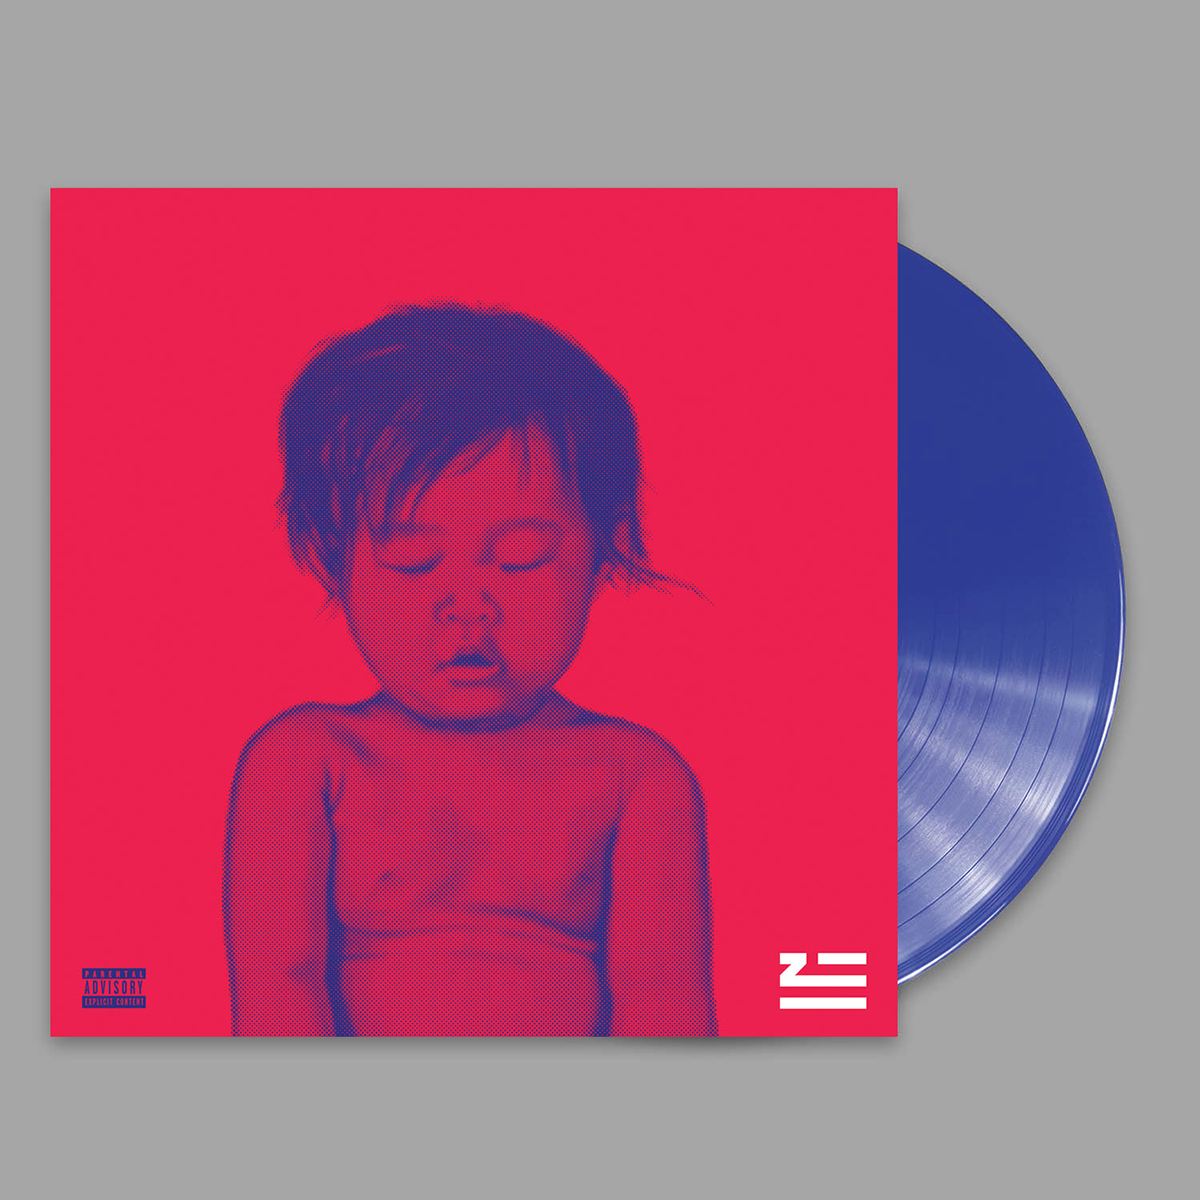 GENERATIONWHY Limited Edition Colored Vinyl